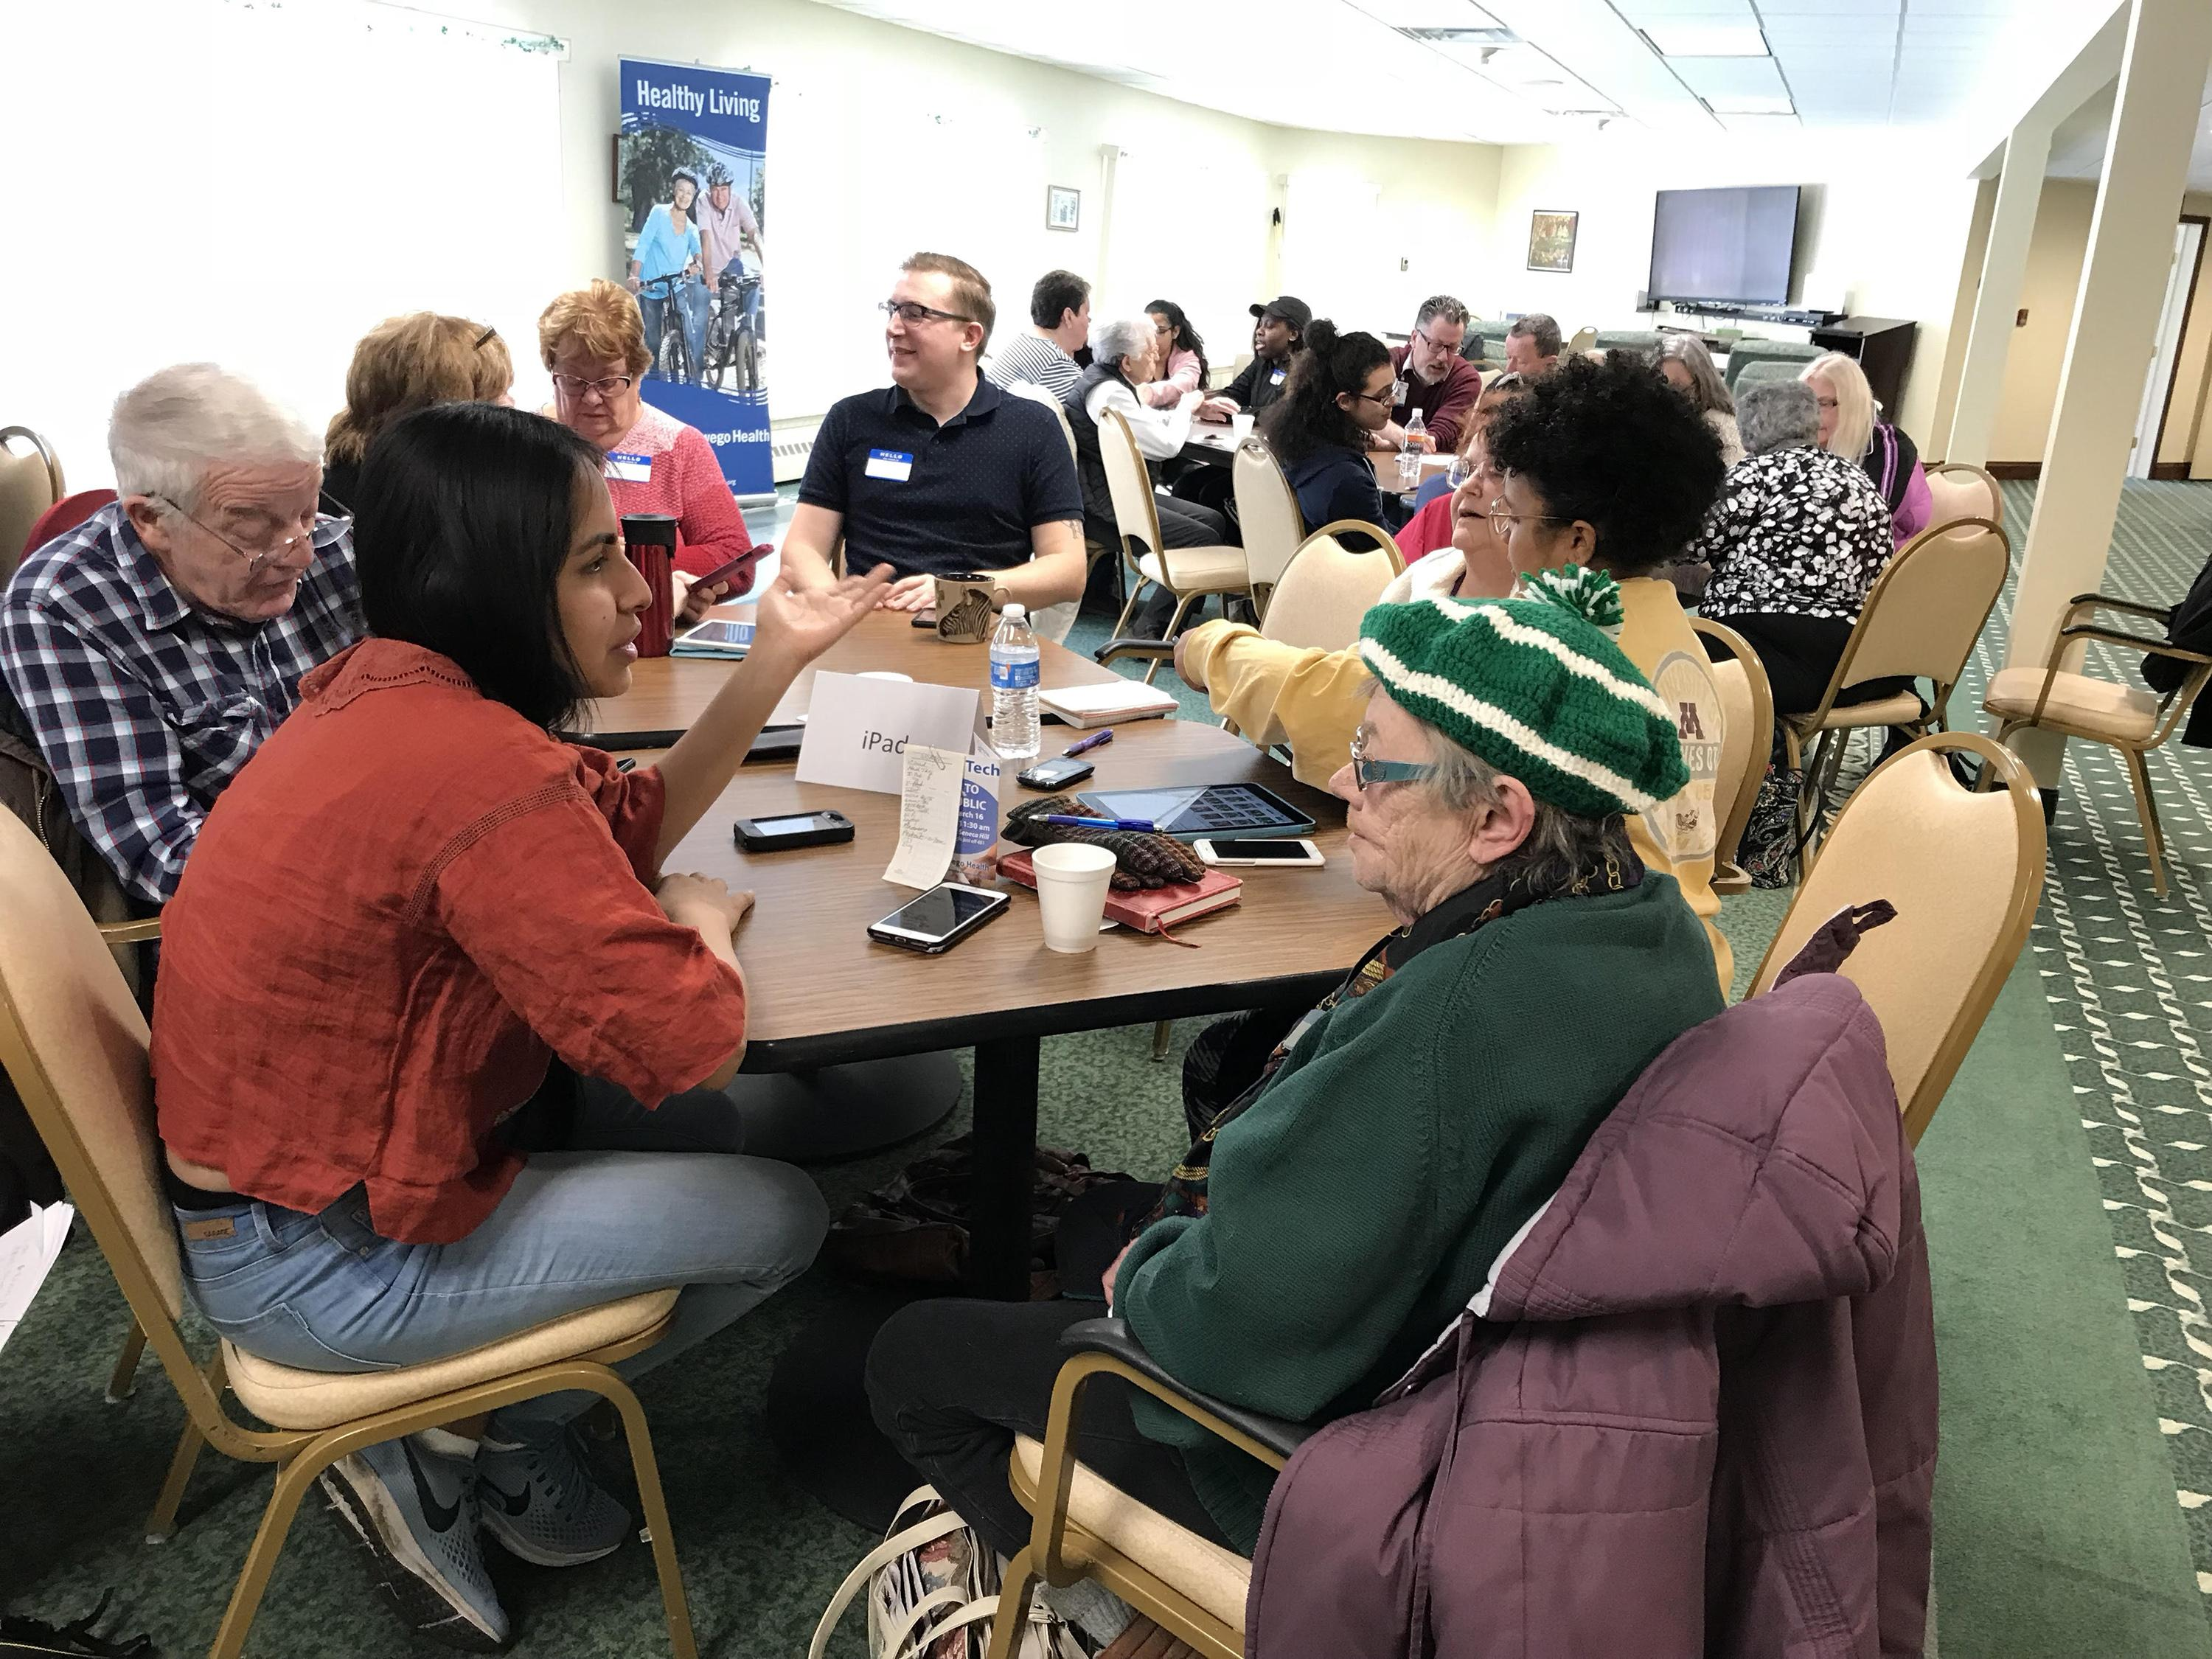 Students participate in a local community outreach effort to spend time with senior citizens at Springside at Seneca Hill and help them become more technically savvy